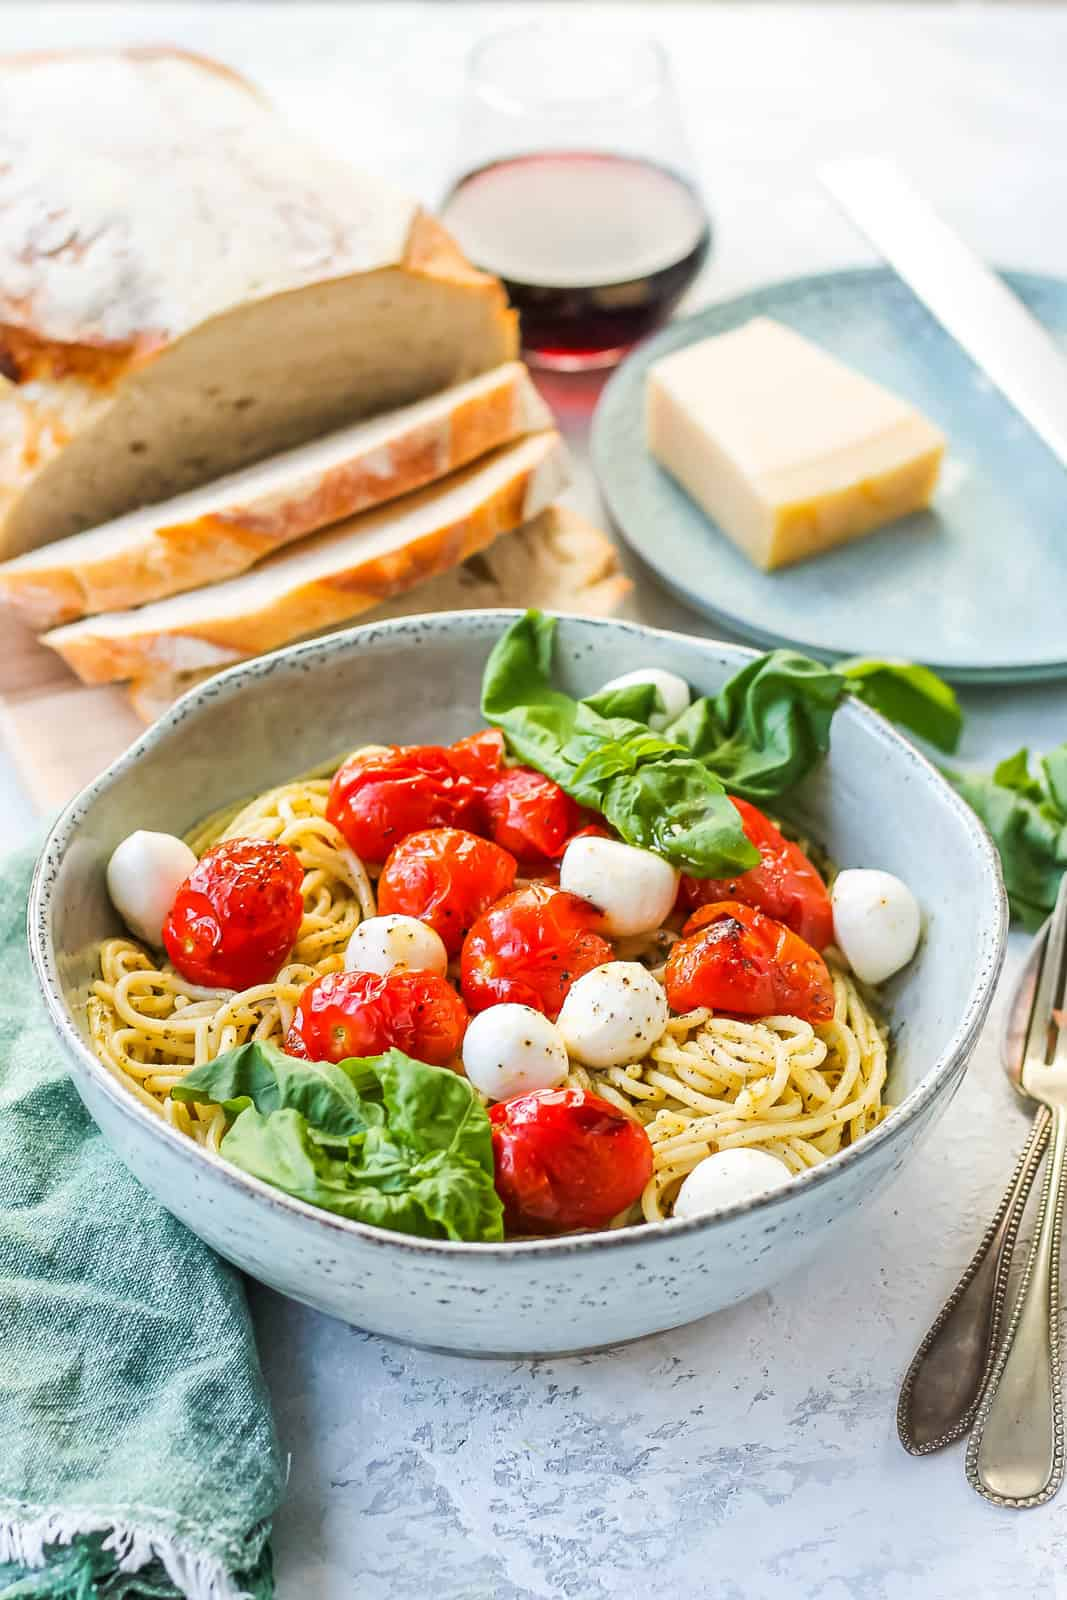 a bowl of vegetarian pesto pasta with tomatoes and mozzarella with a loaf of bread and a glass of wine in the background